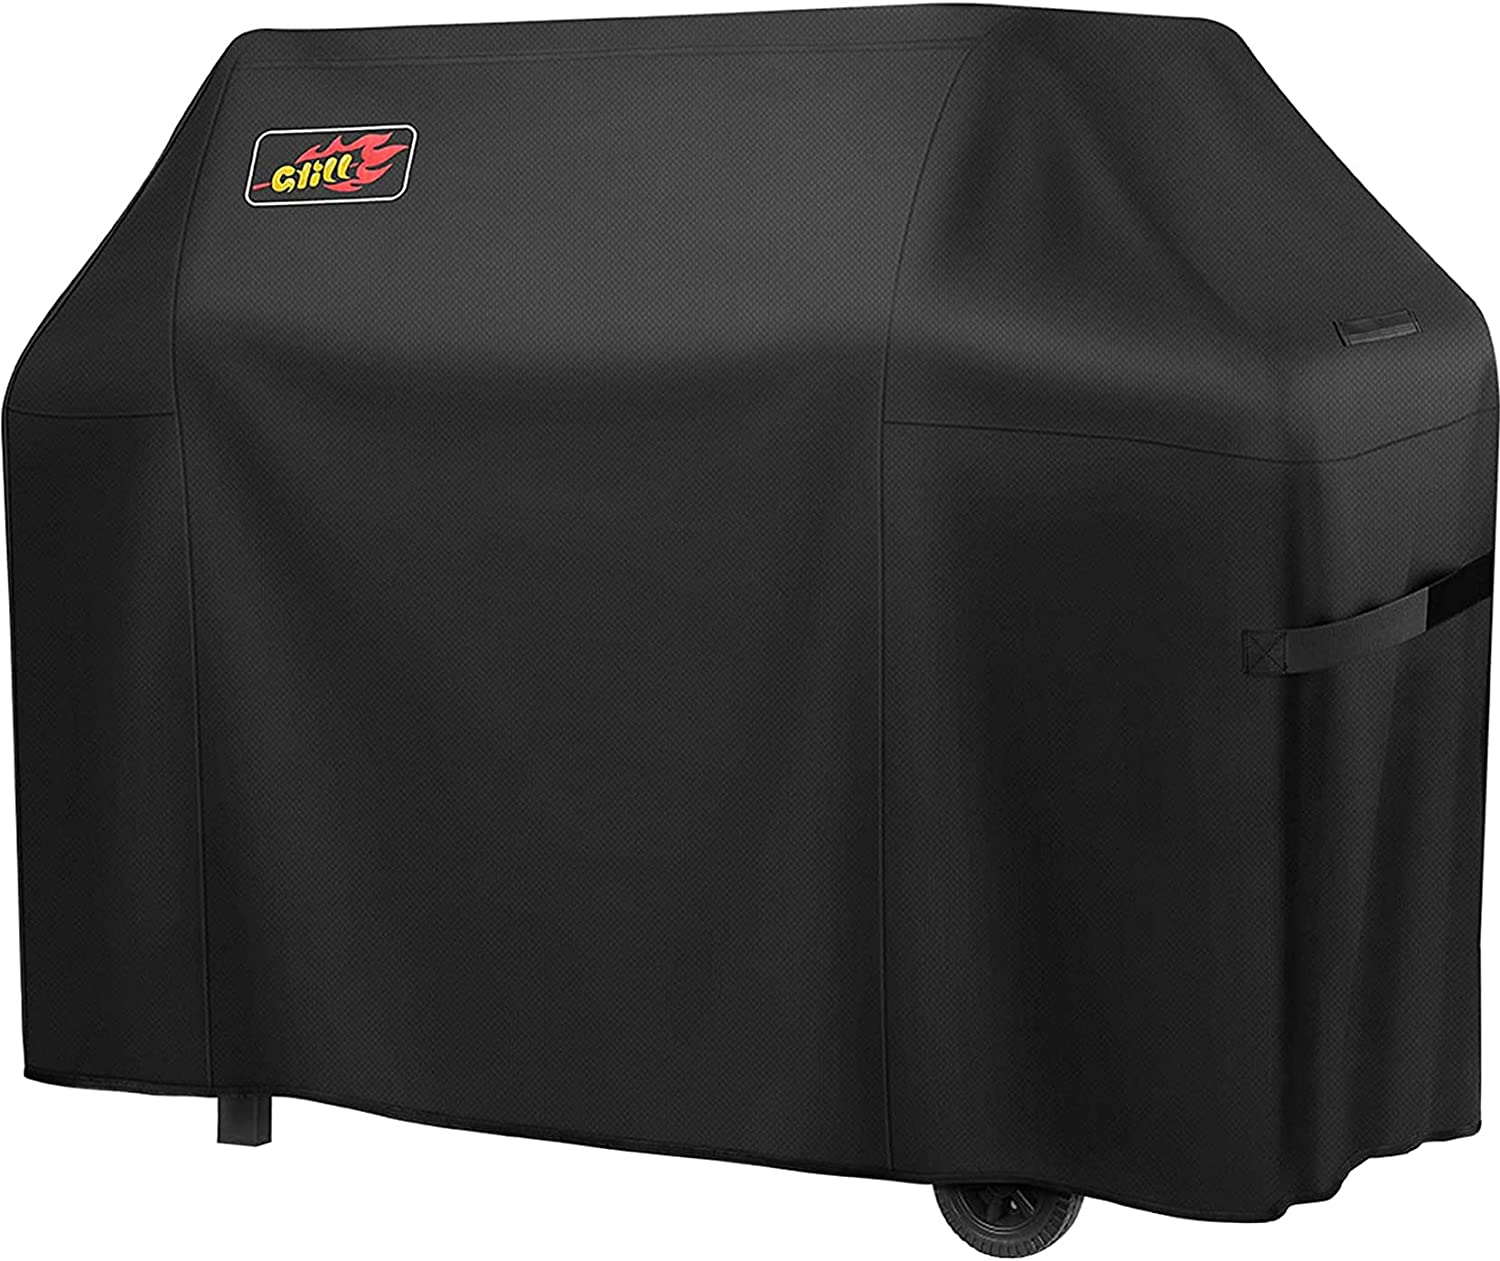 Zovoty BBQ Grill Cover(58-Inch), Heavy Duty Waterproof 600D Oxford Gas Grill Cover, Weather & Fade Resistant 3-4 Burner Barbecue Cover Fits for Weber Char-Broil Nexgrill Brinkmann etc(Bag Included): Garden & Outdoor